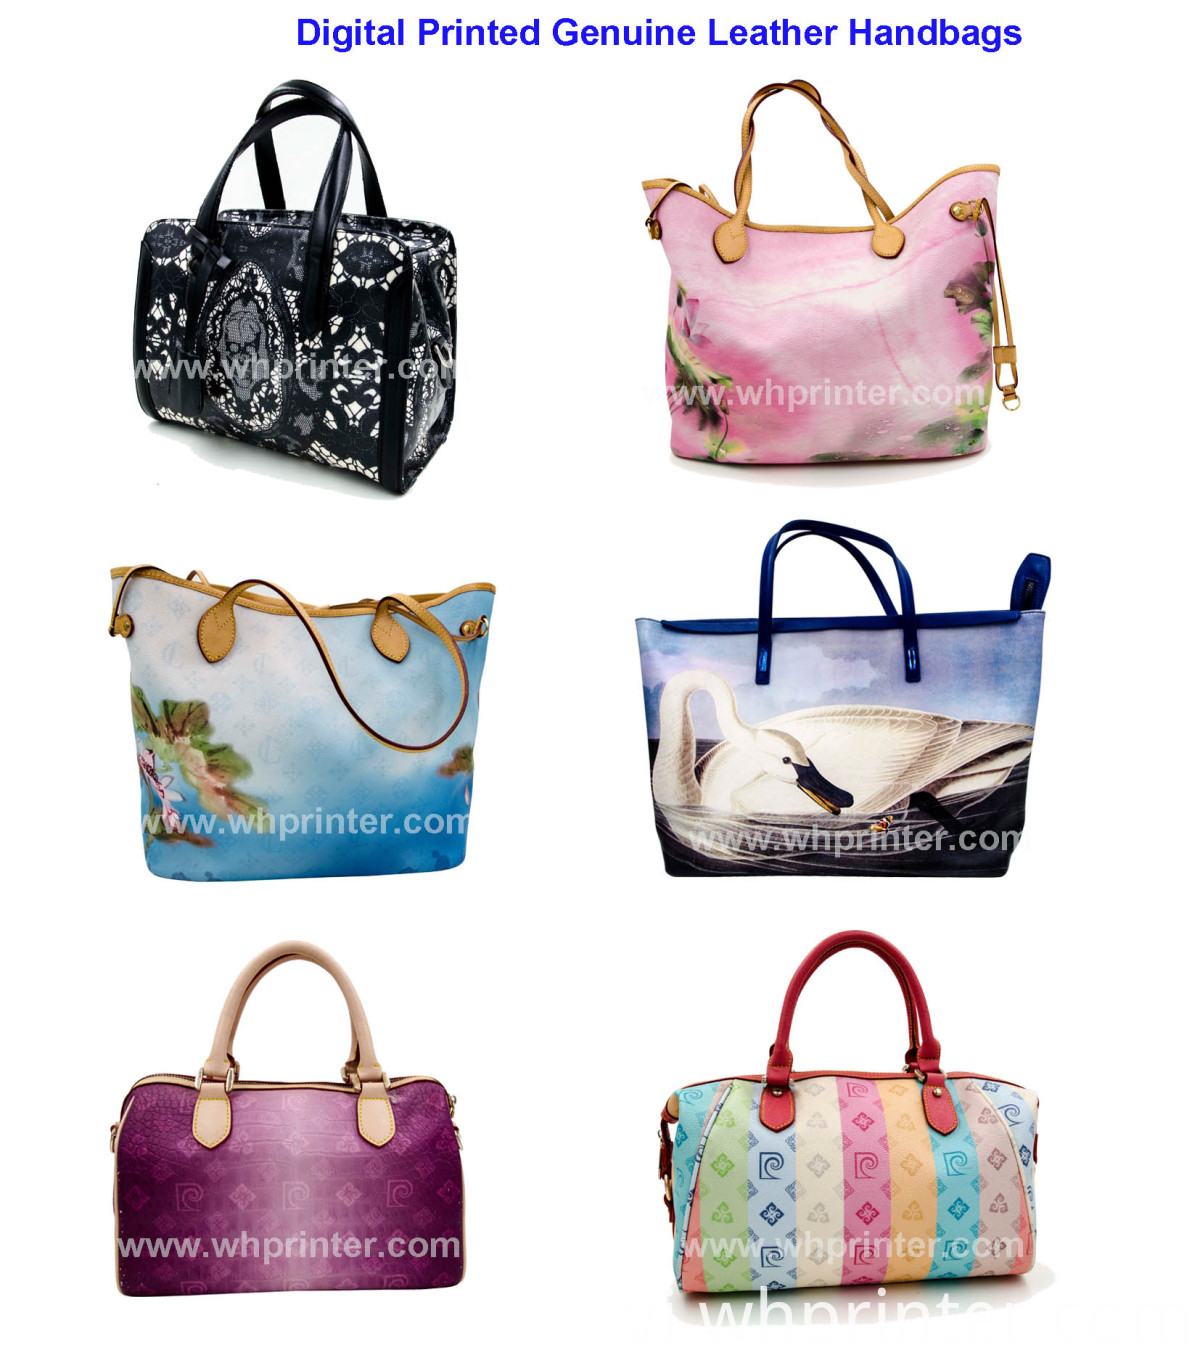 digital printed genuine leather handbag